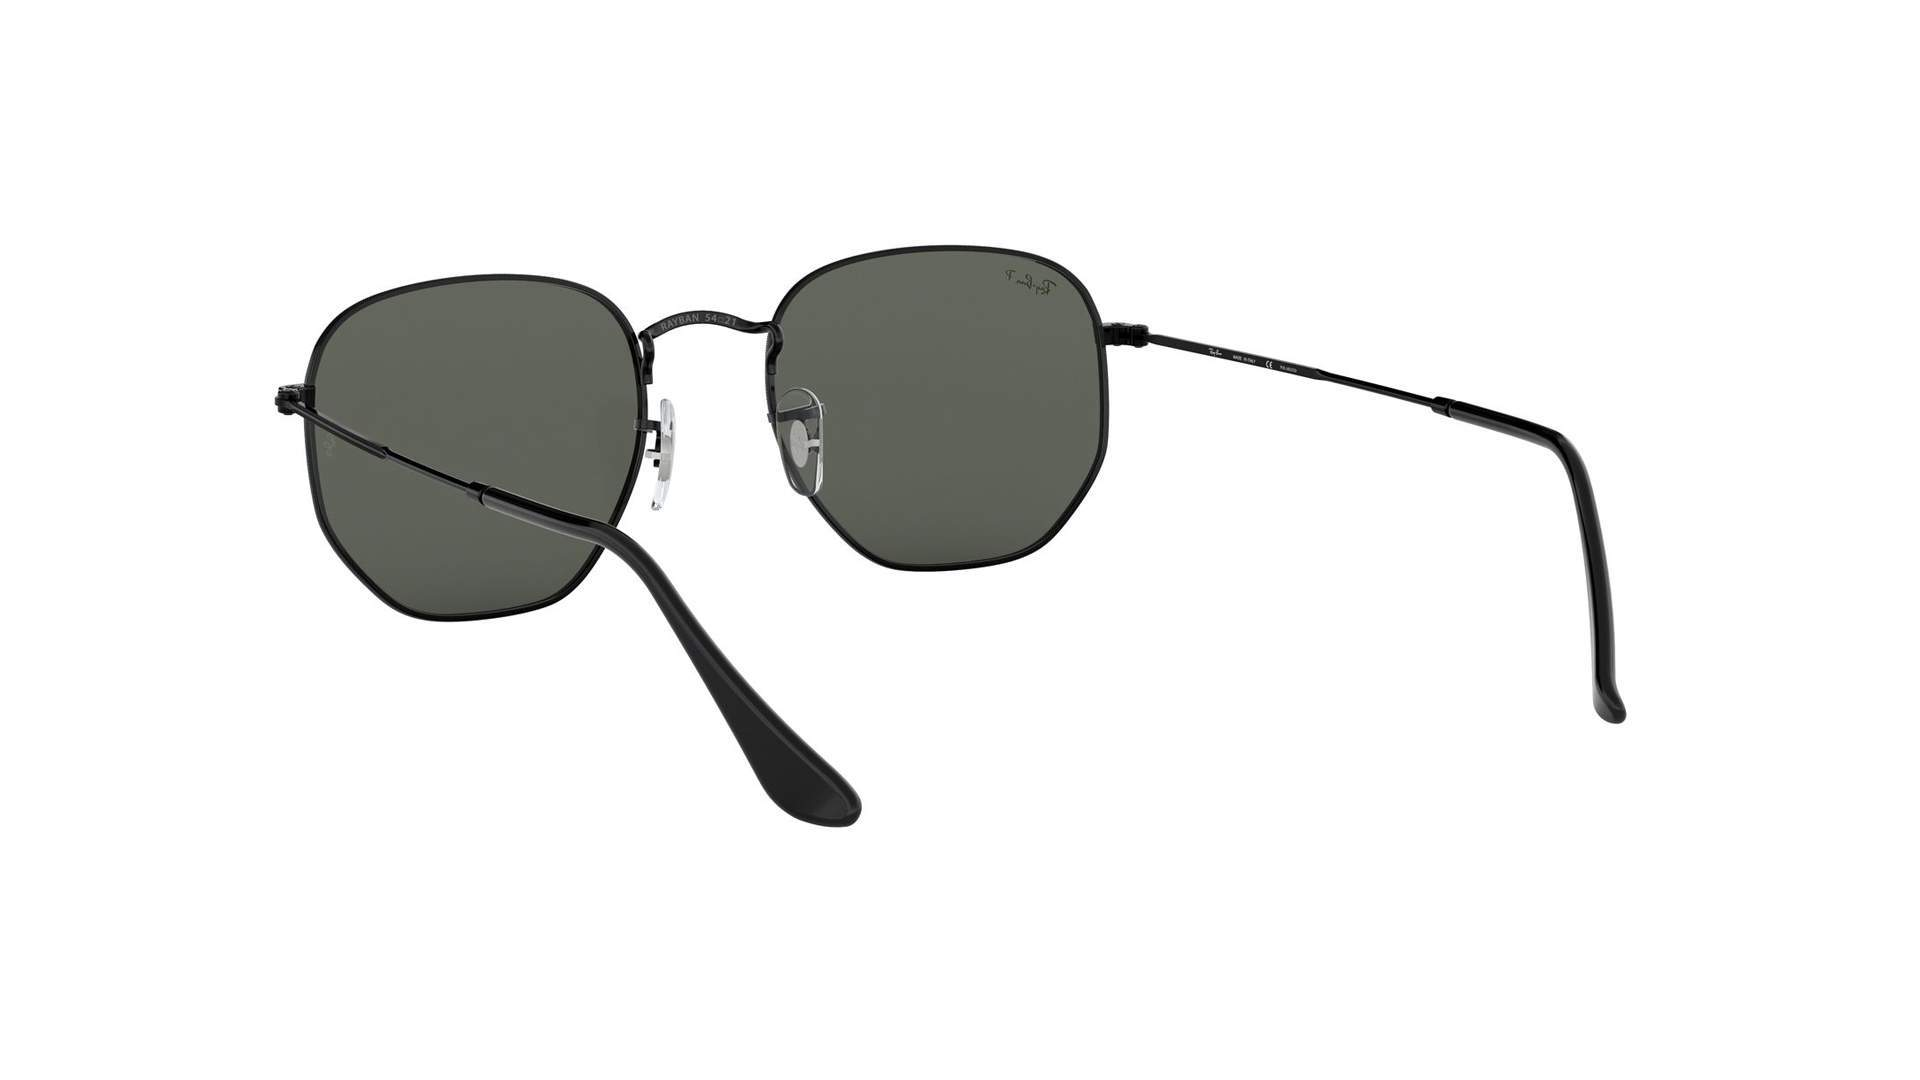 df58768ef0c9a Sunglasses Ray-Ban Hexagonal Flat Lenses Black RB3548N 002 58 54-21 Large  Polarized